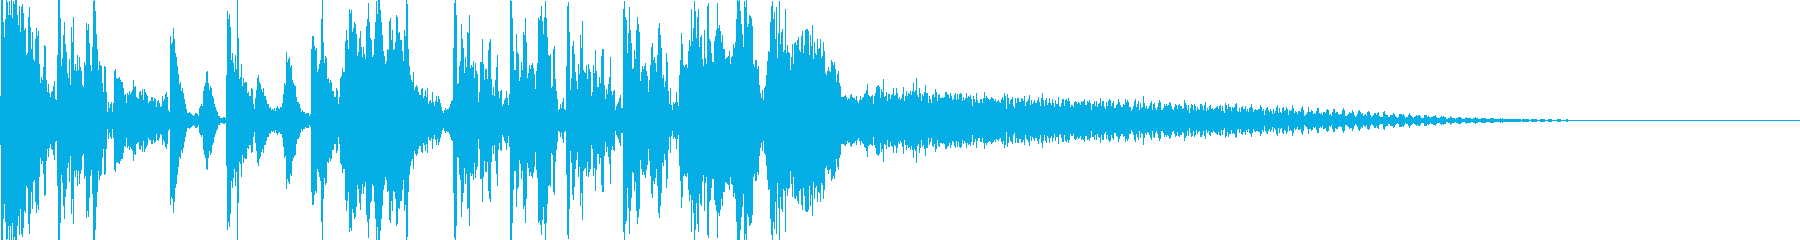 Funky, energetic,...'s reproduced waveform